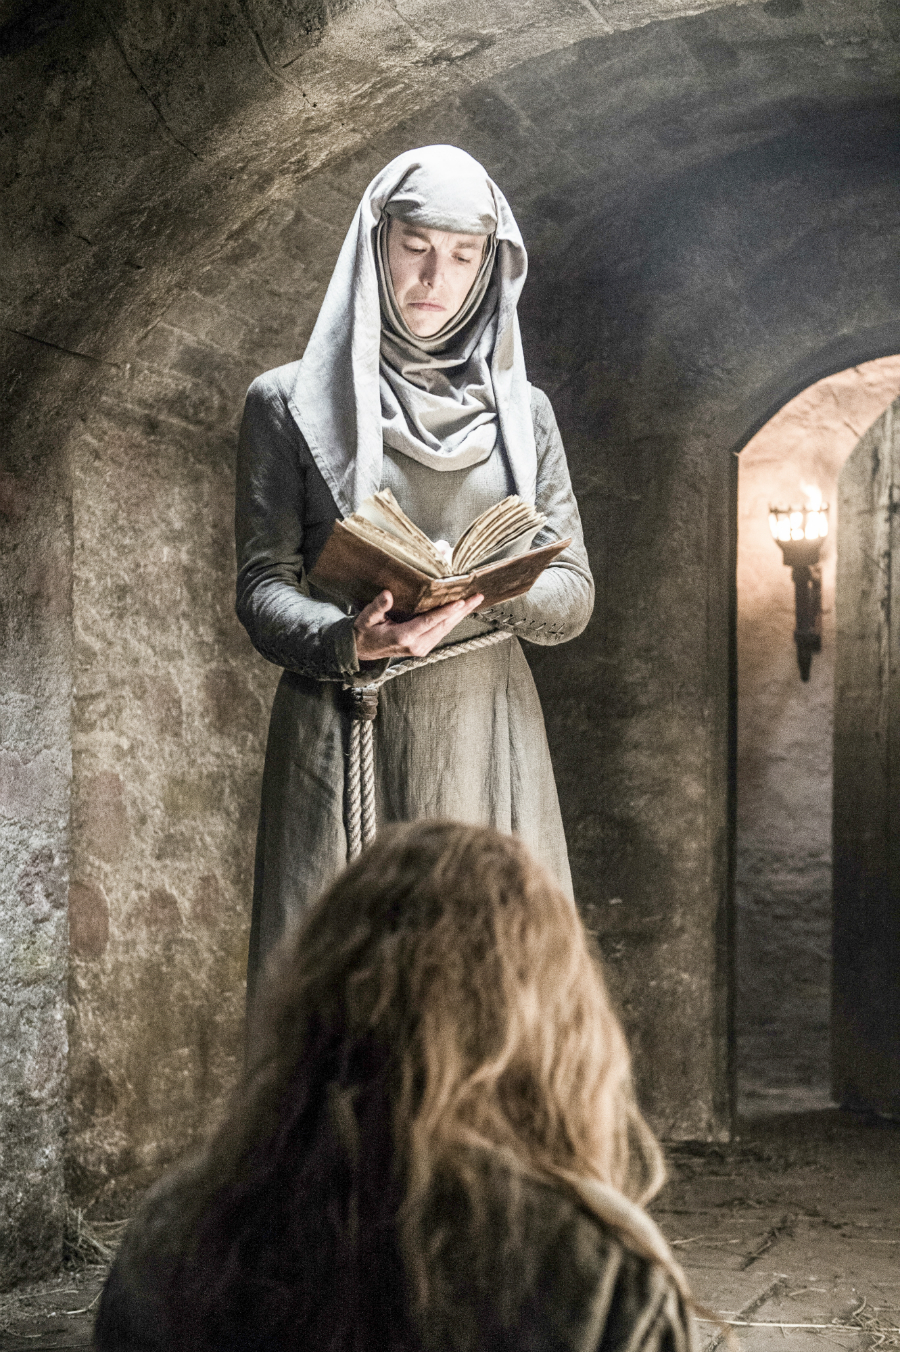 Daenerys Is Looking Sexy And Scruffy In New Game Of Thrones Season 6 Image #35487